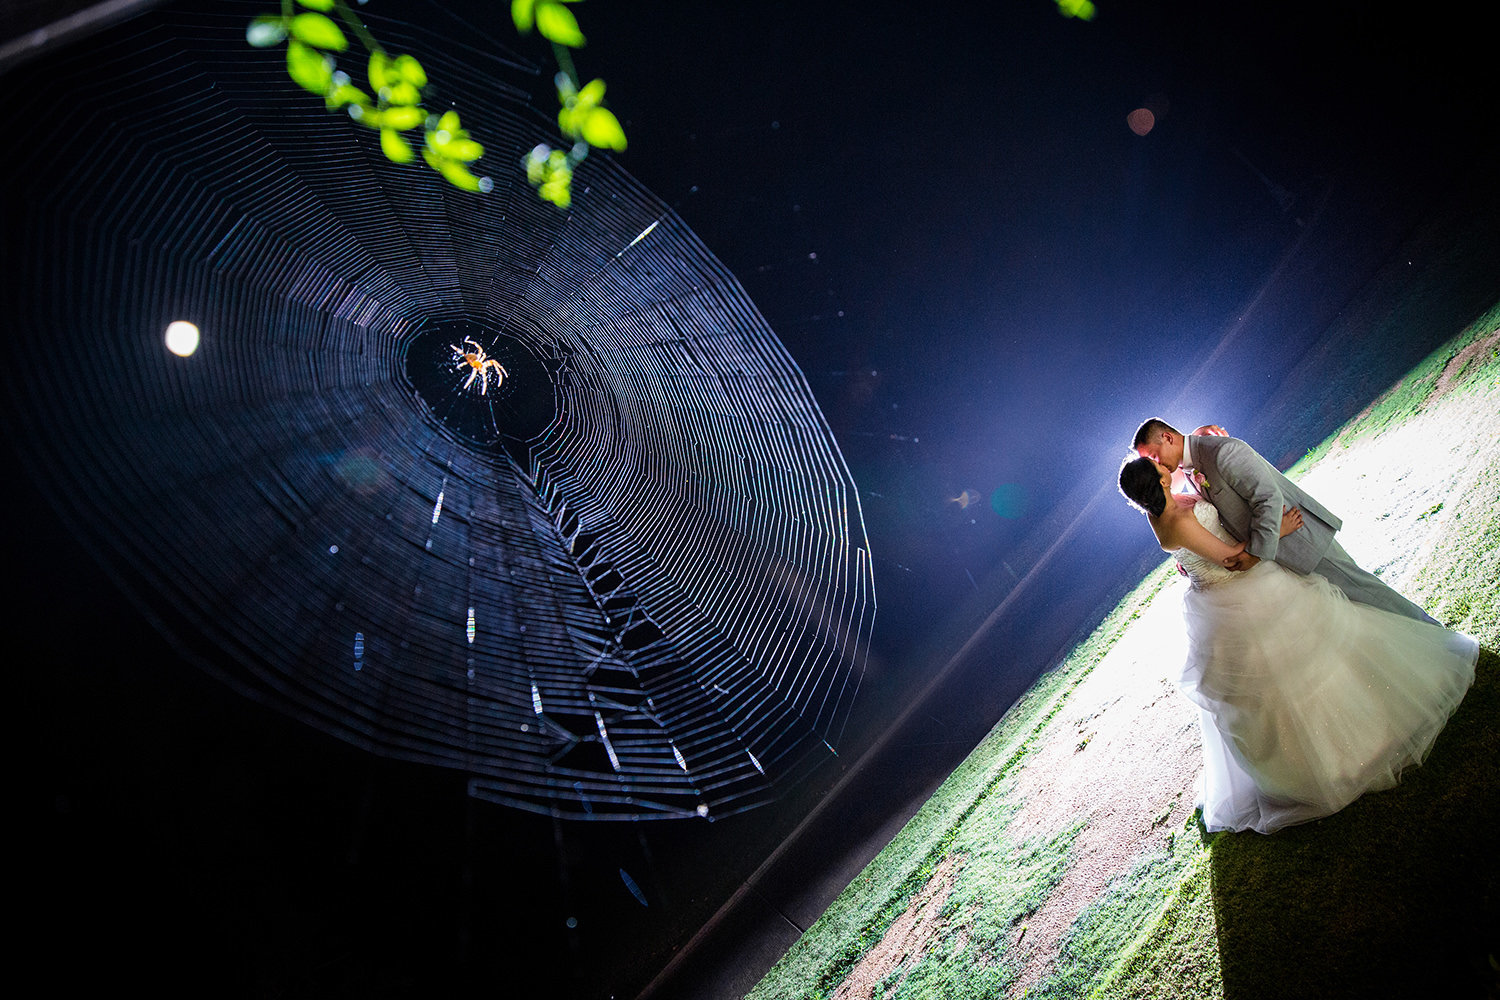 bride and groom at the beautiful wedgewood night image